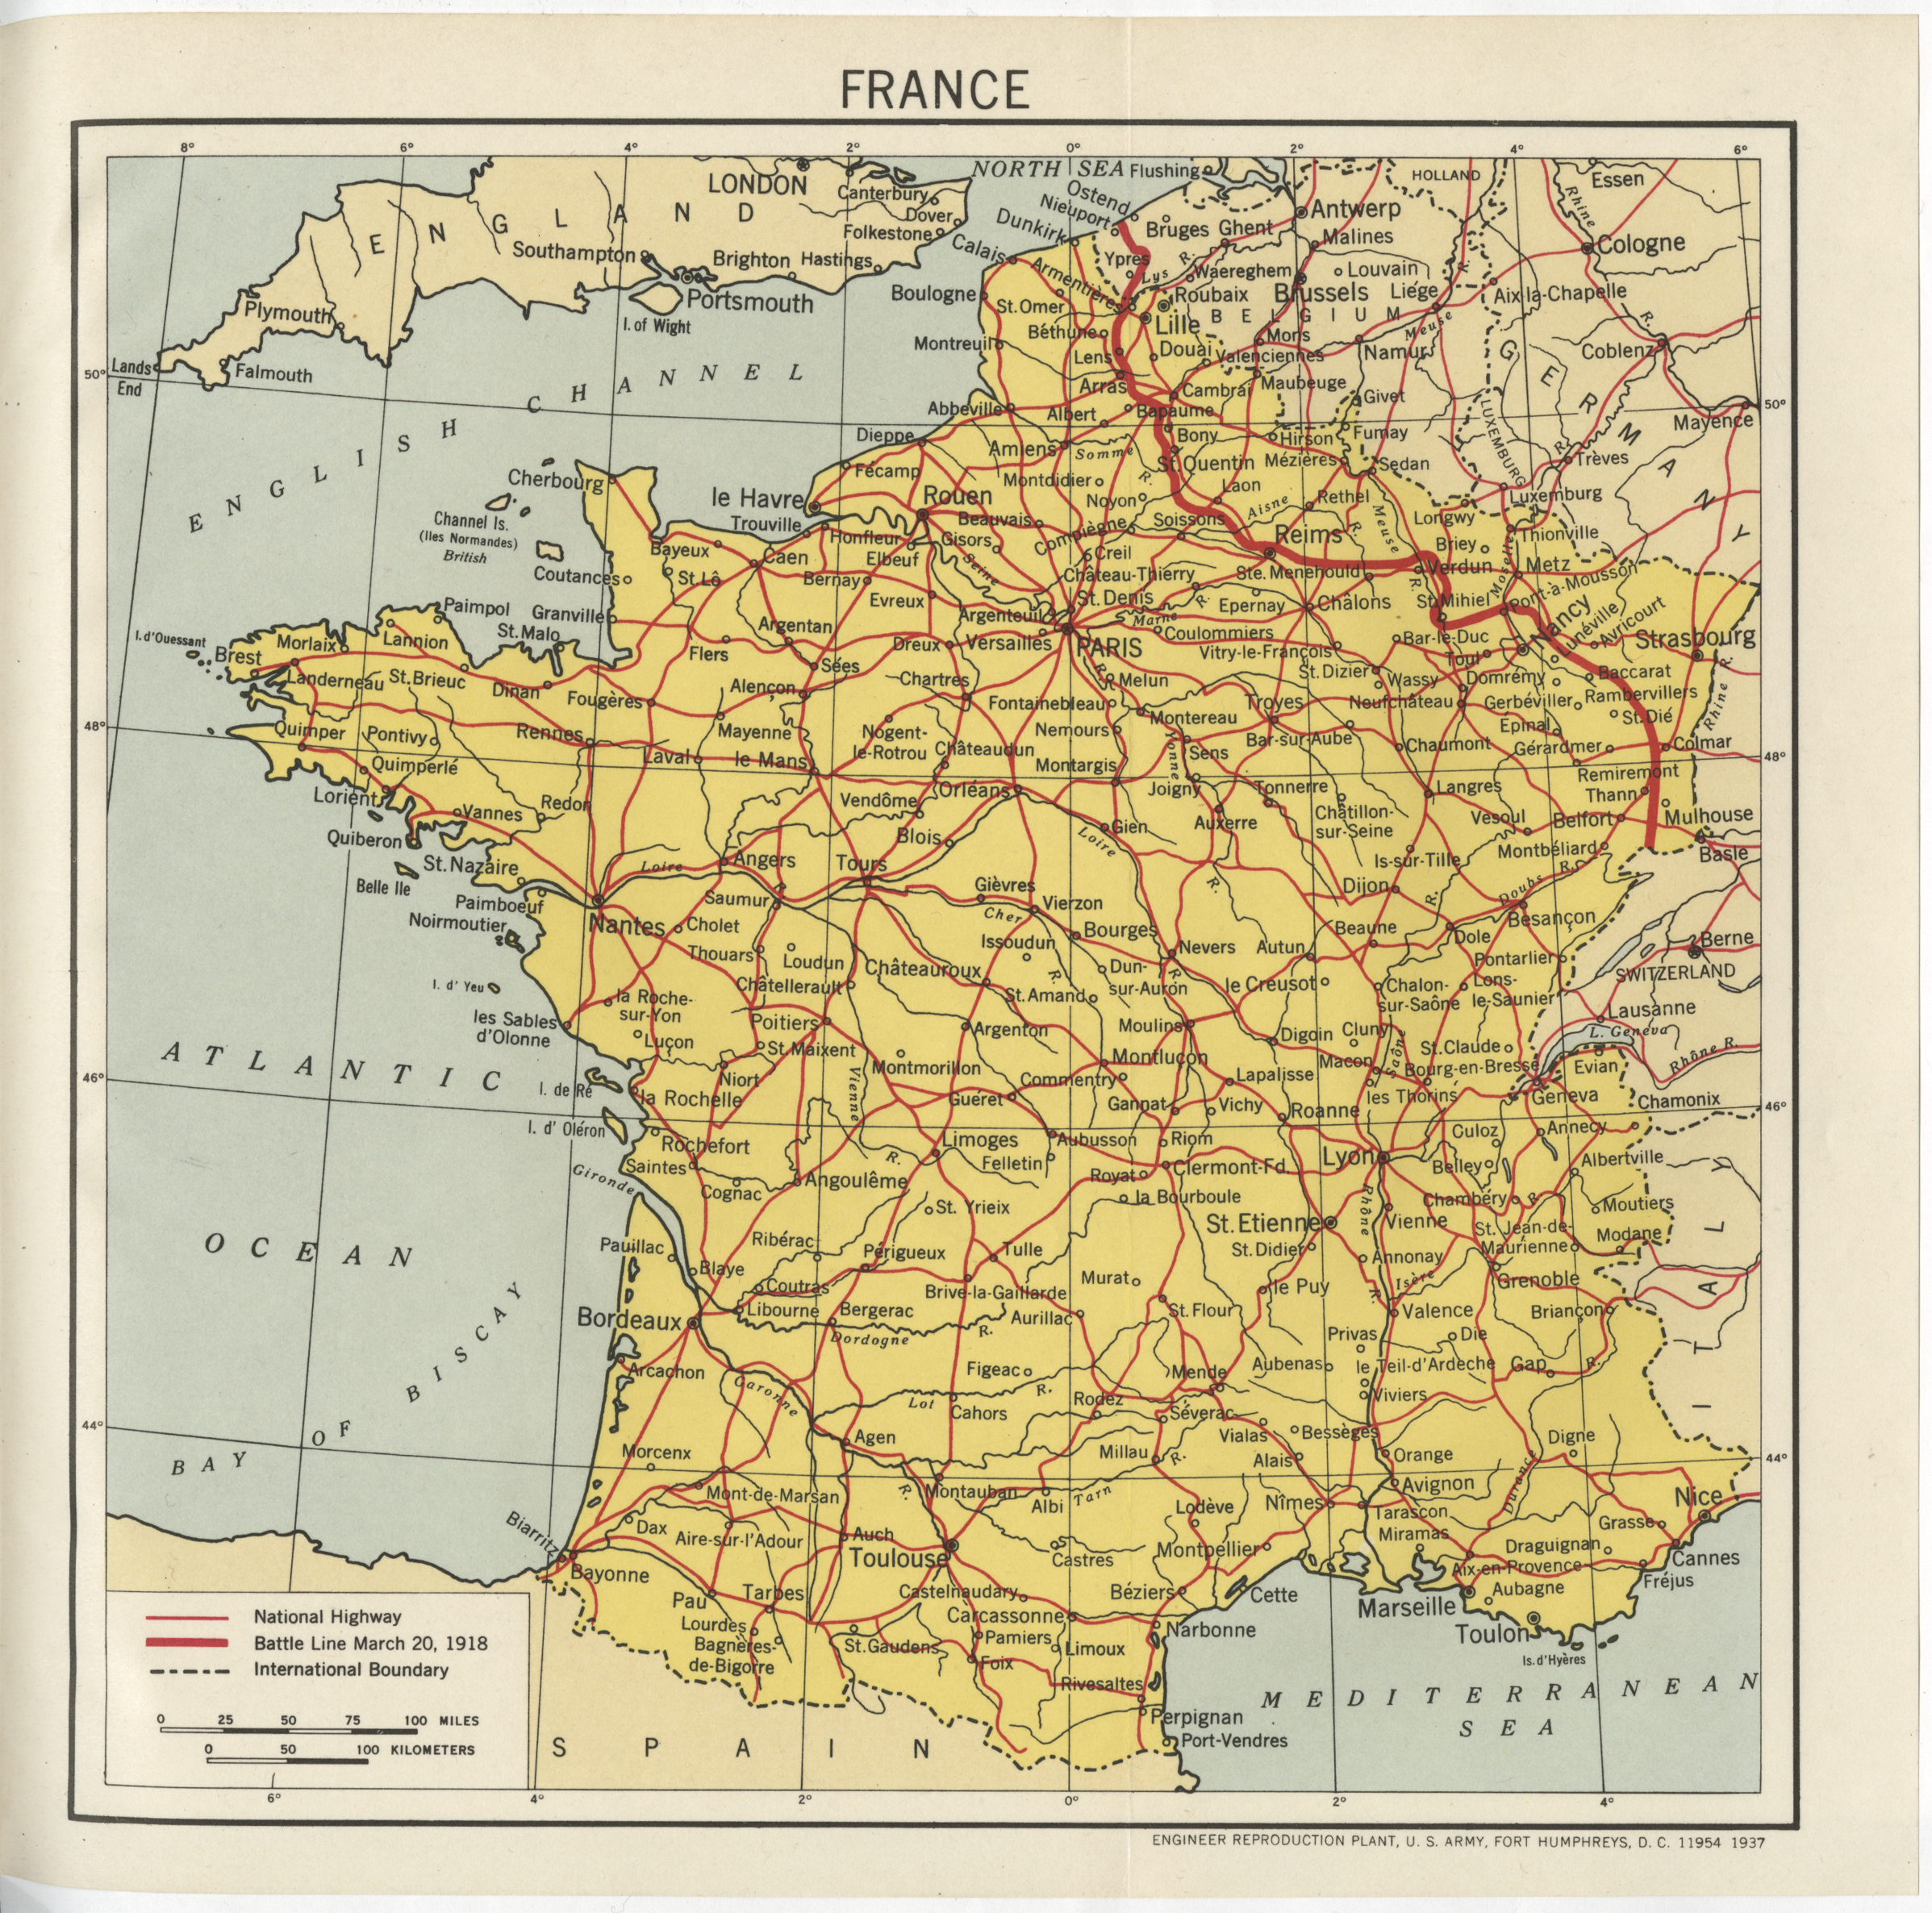 map of europe during ww1 with World War I Historic Reference Book Now Available Abmcgov on Pannonian Sea additionally Prisoners of War 1940 additionally European Nationalism besides Battle Of Verdun together with Wi The  herlands Joins The Central Powers During Ww1.